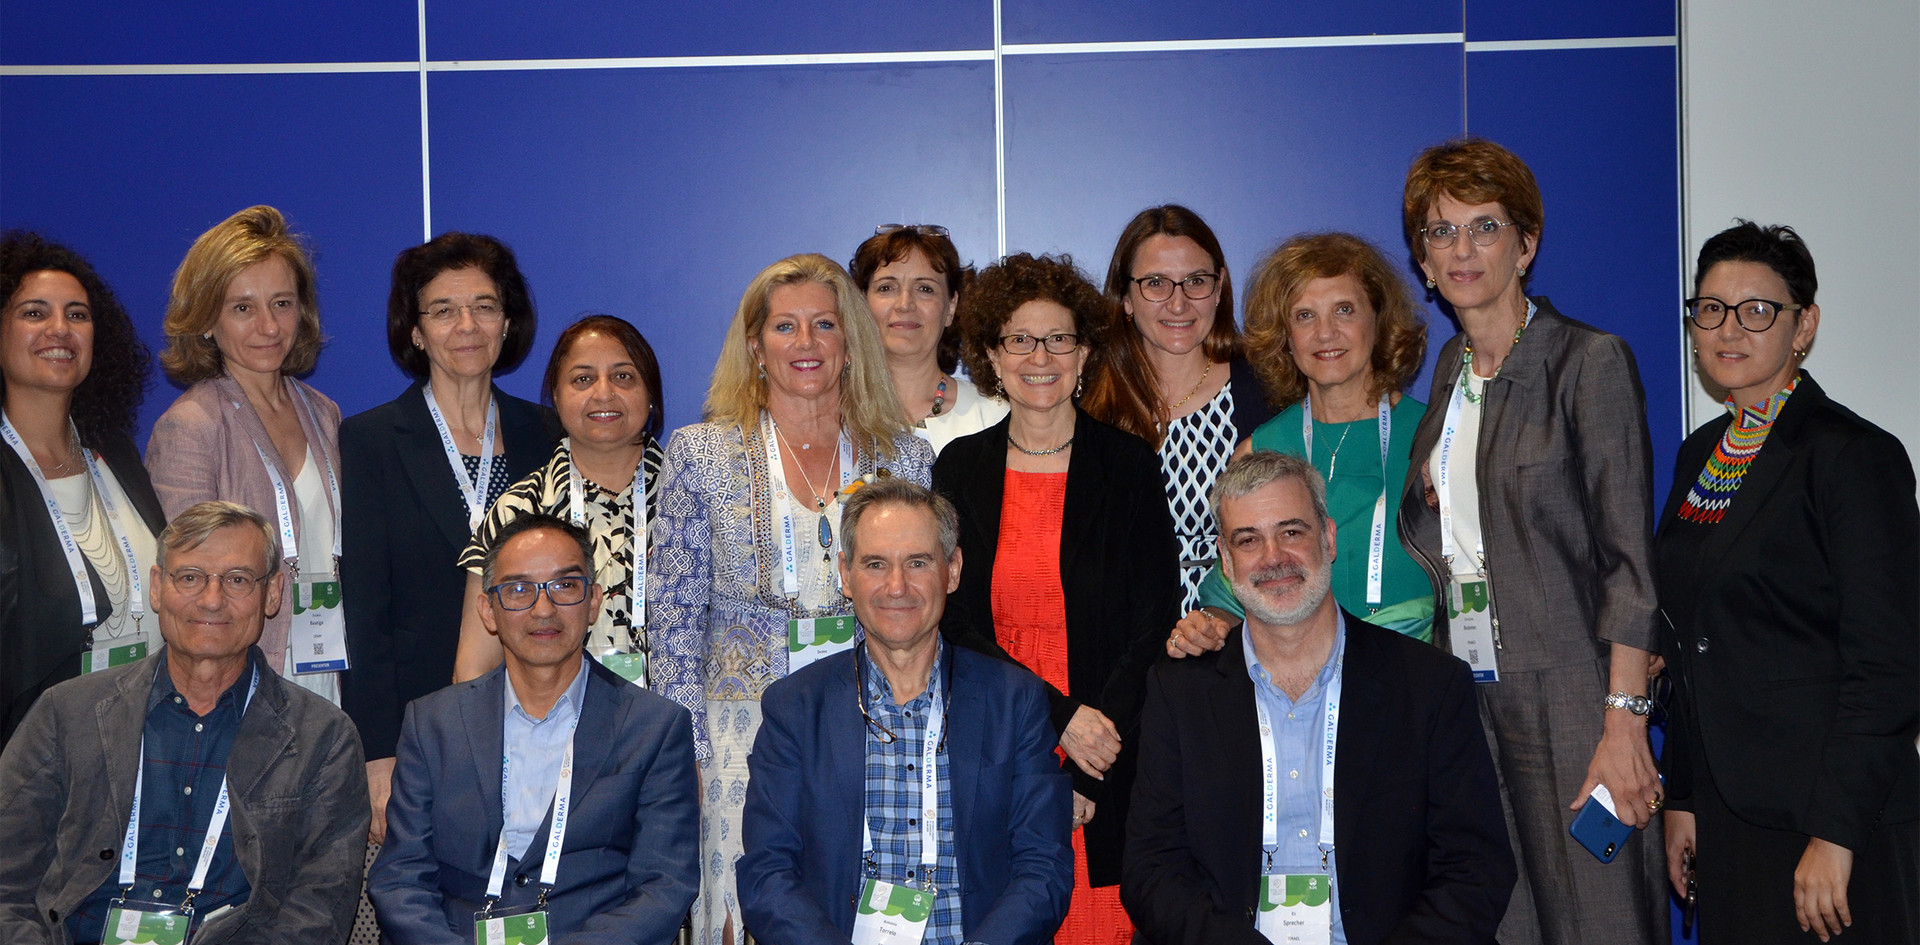 World Congress of Dermatology 2019 (Milan, Italy)